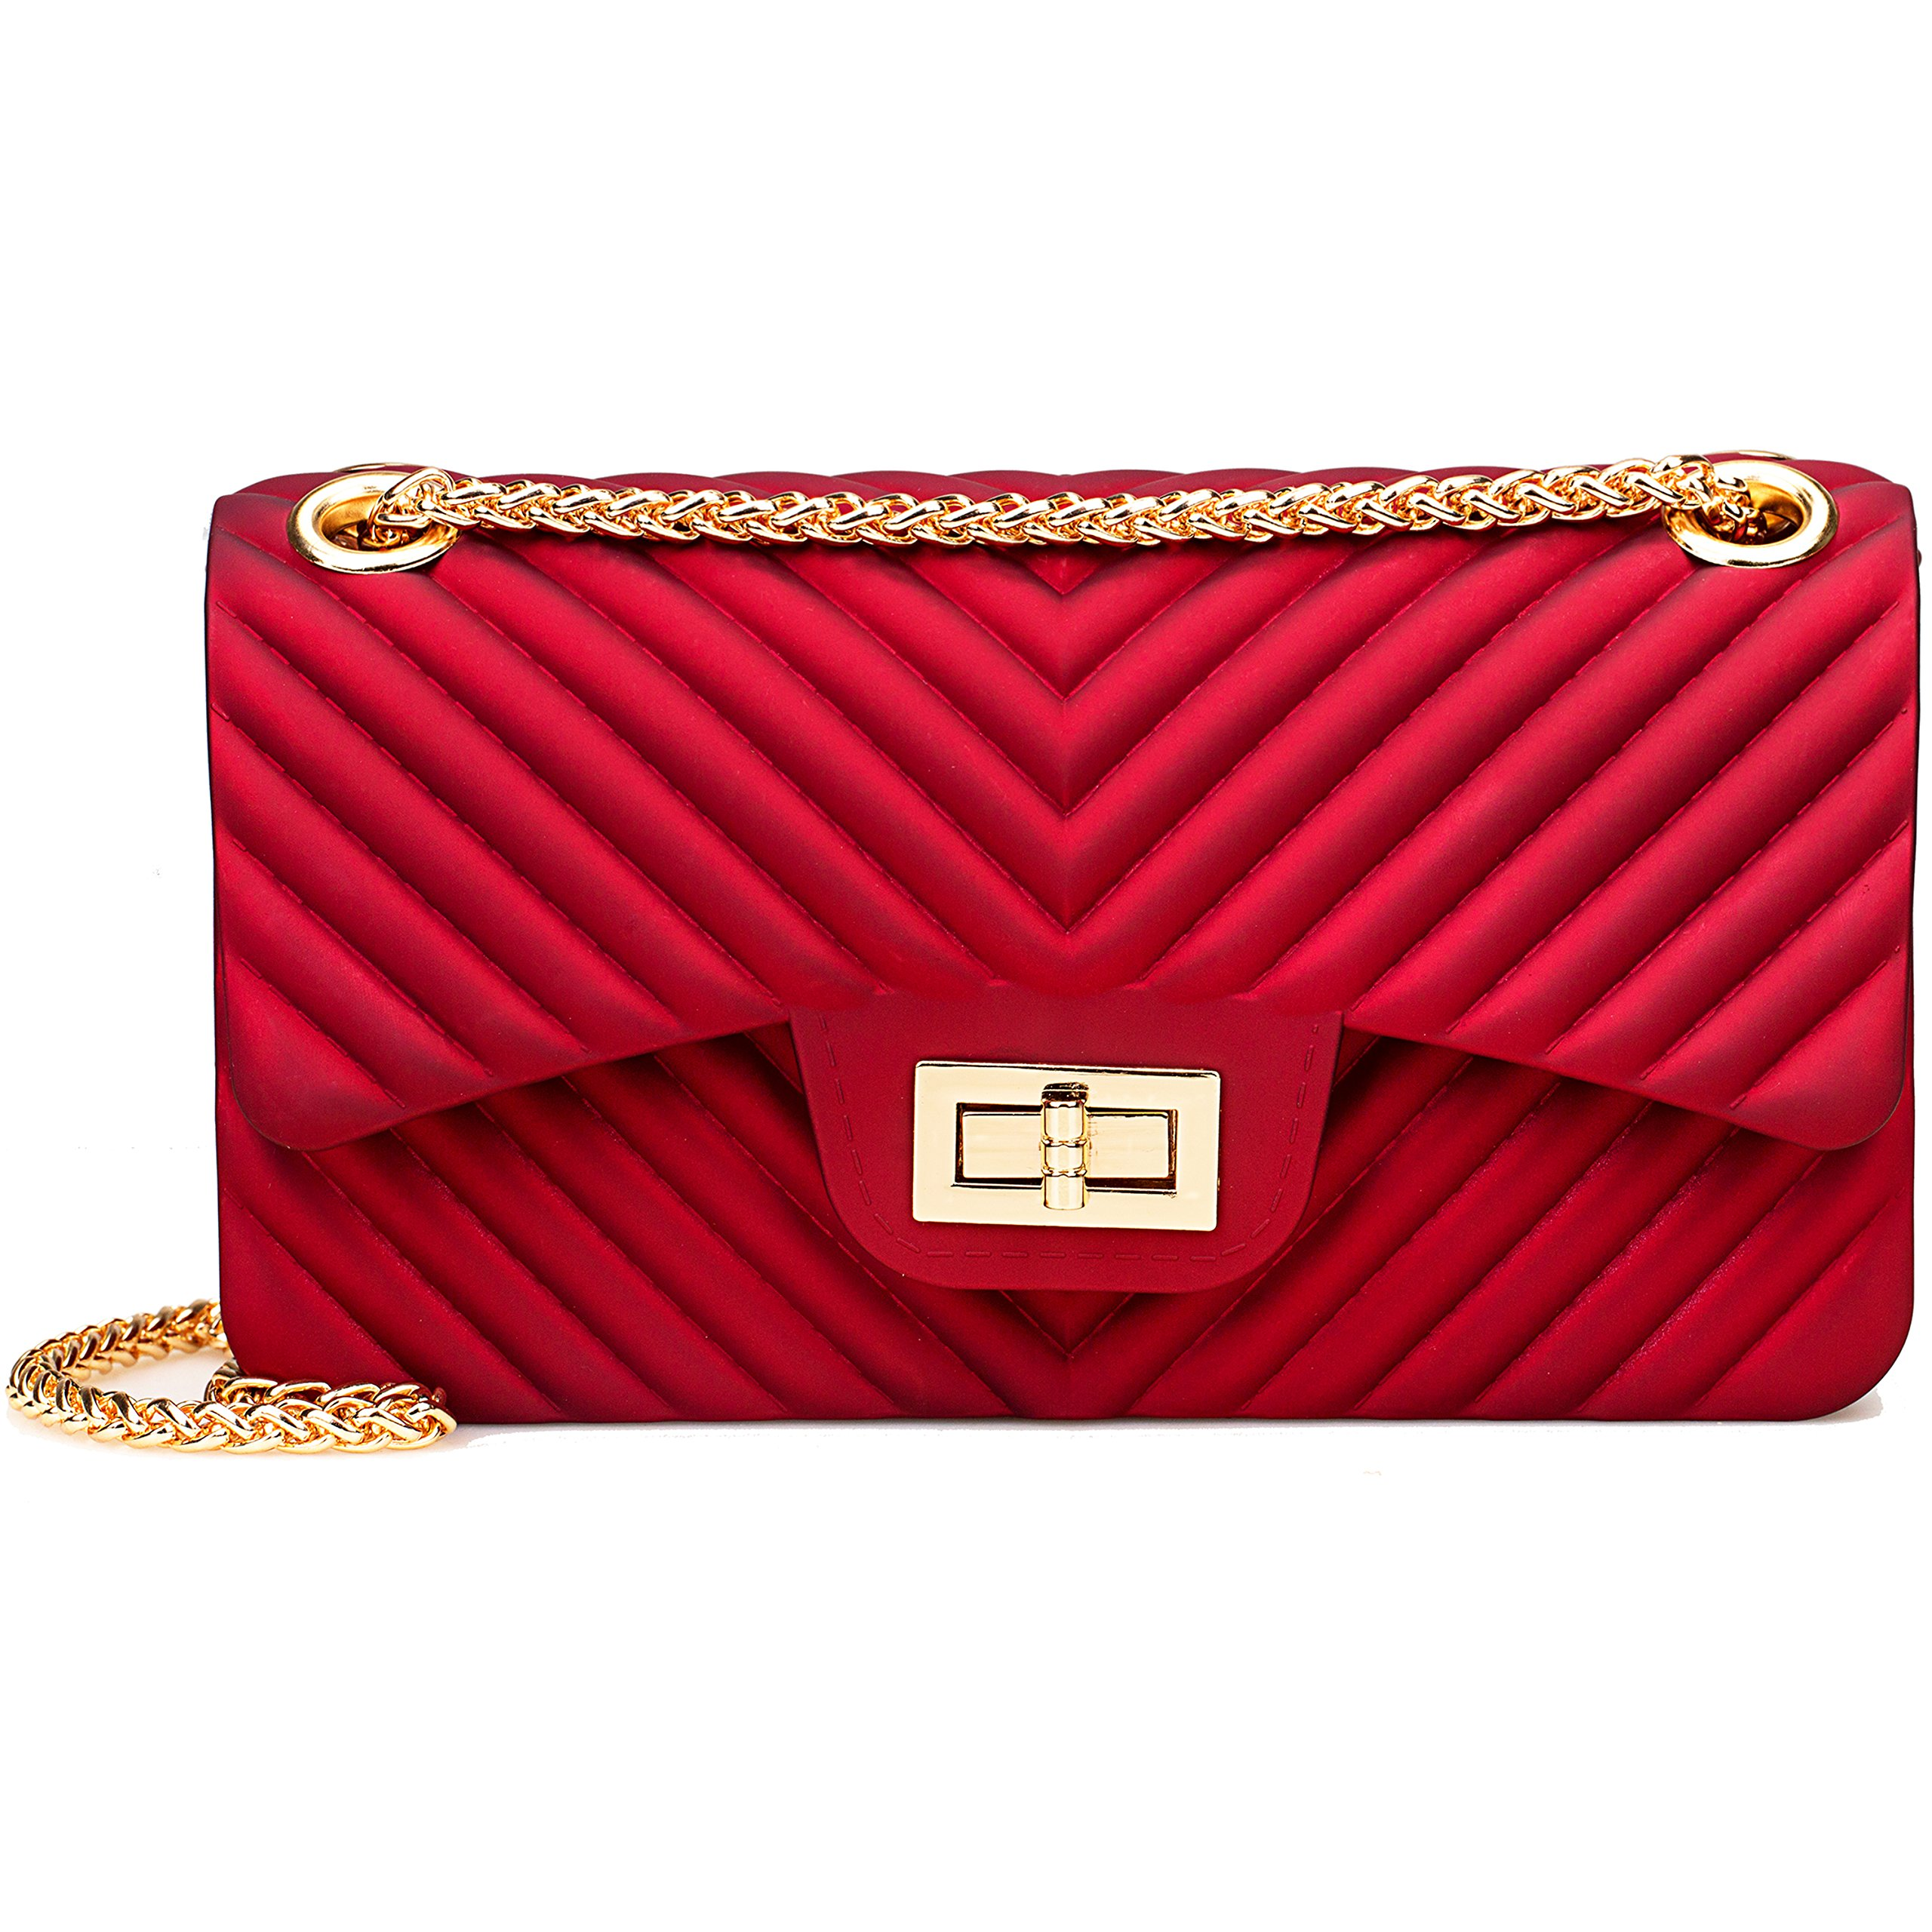 Women Fashion Shoulder Bag Jelly Clutch Handbag Quilted Crossbody Bag with Chain - Red